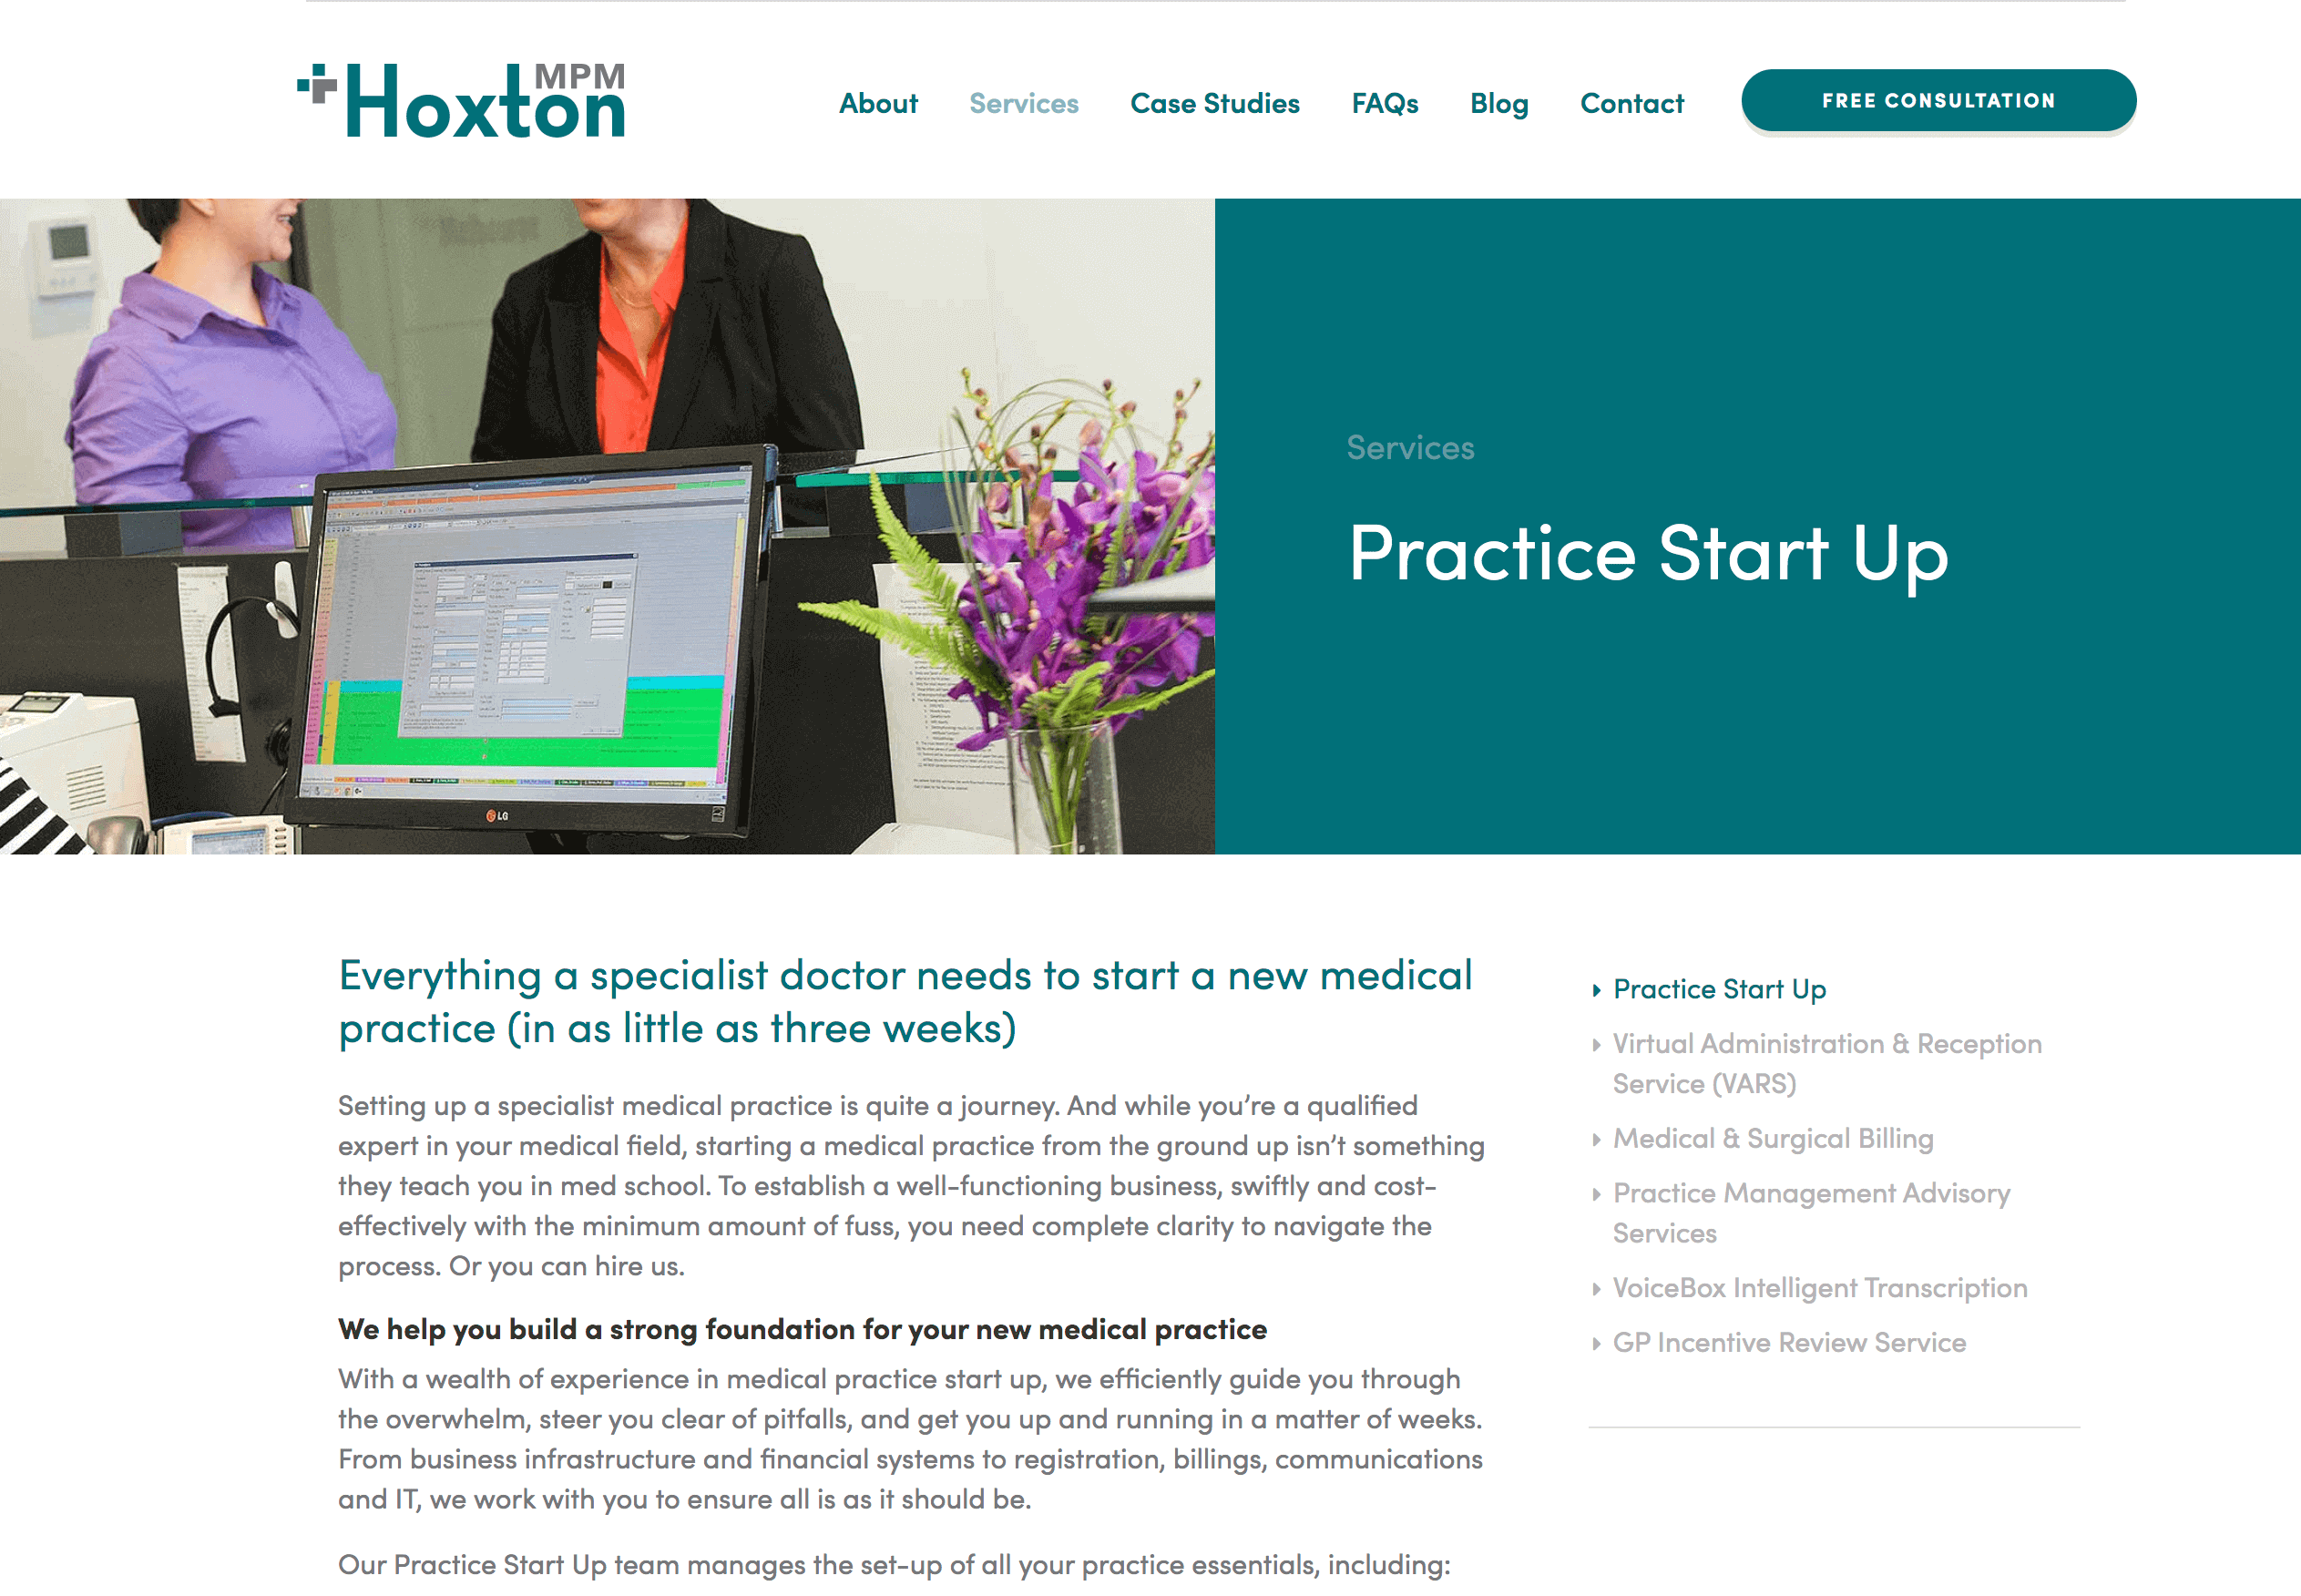 medical-practice-start-up-copywriting (1) (1) (1) (1) (1) (2) (1)